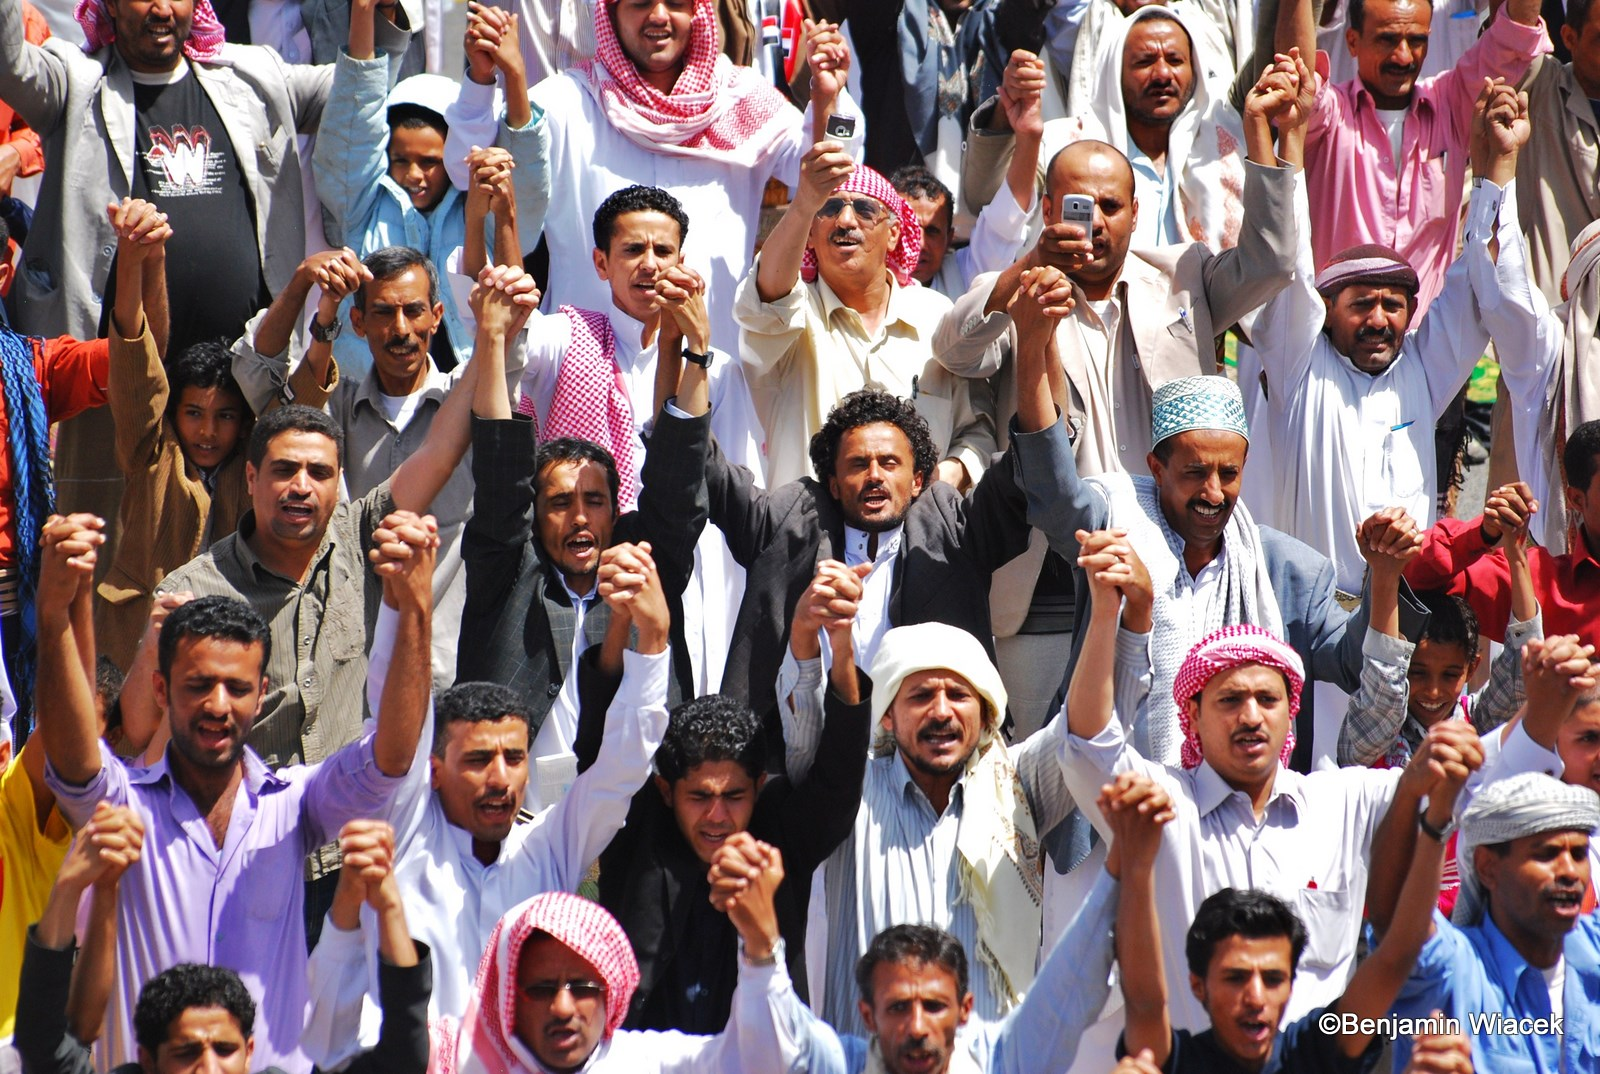 yemeni people united against Saleh